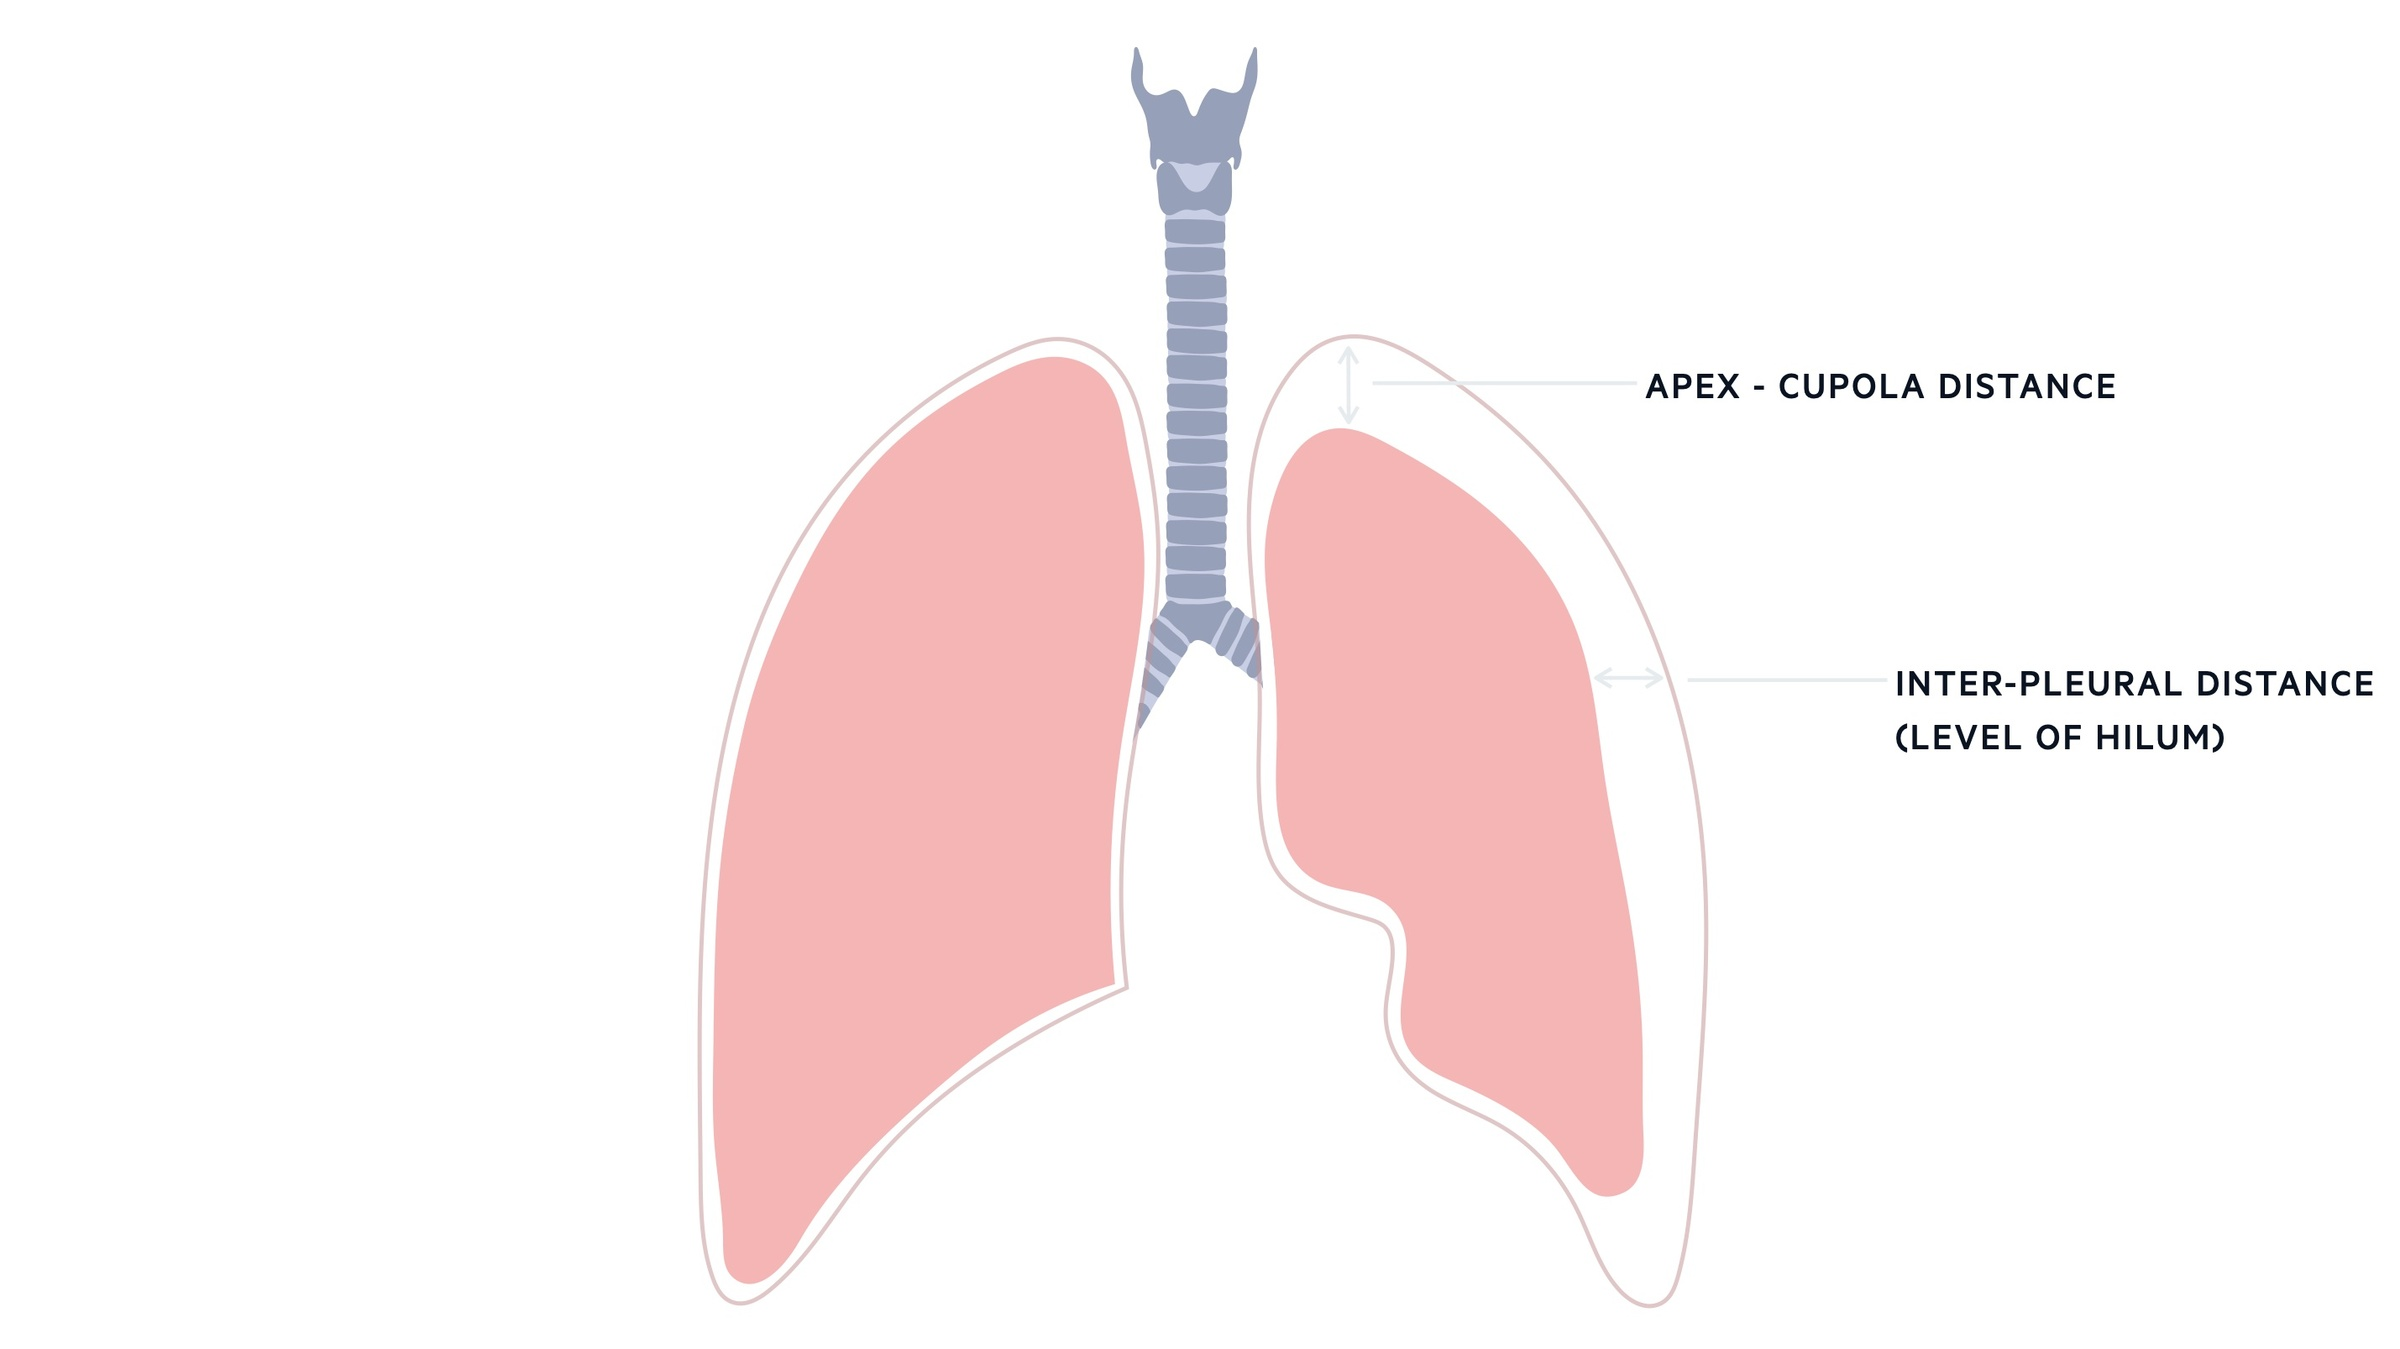 Apex-cupola distance and inter-pleural distance in pneumothorax